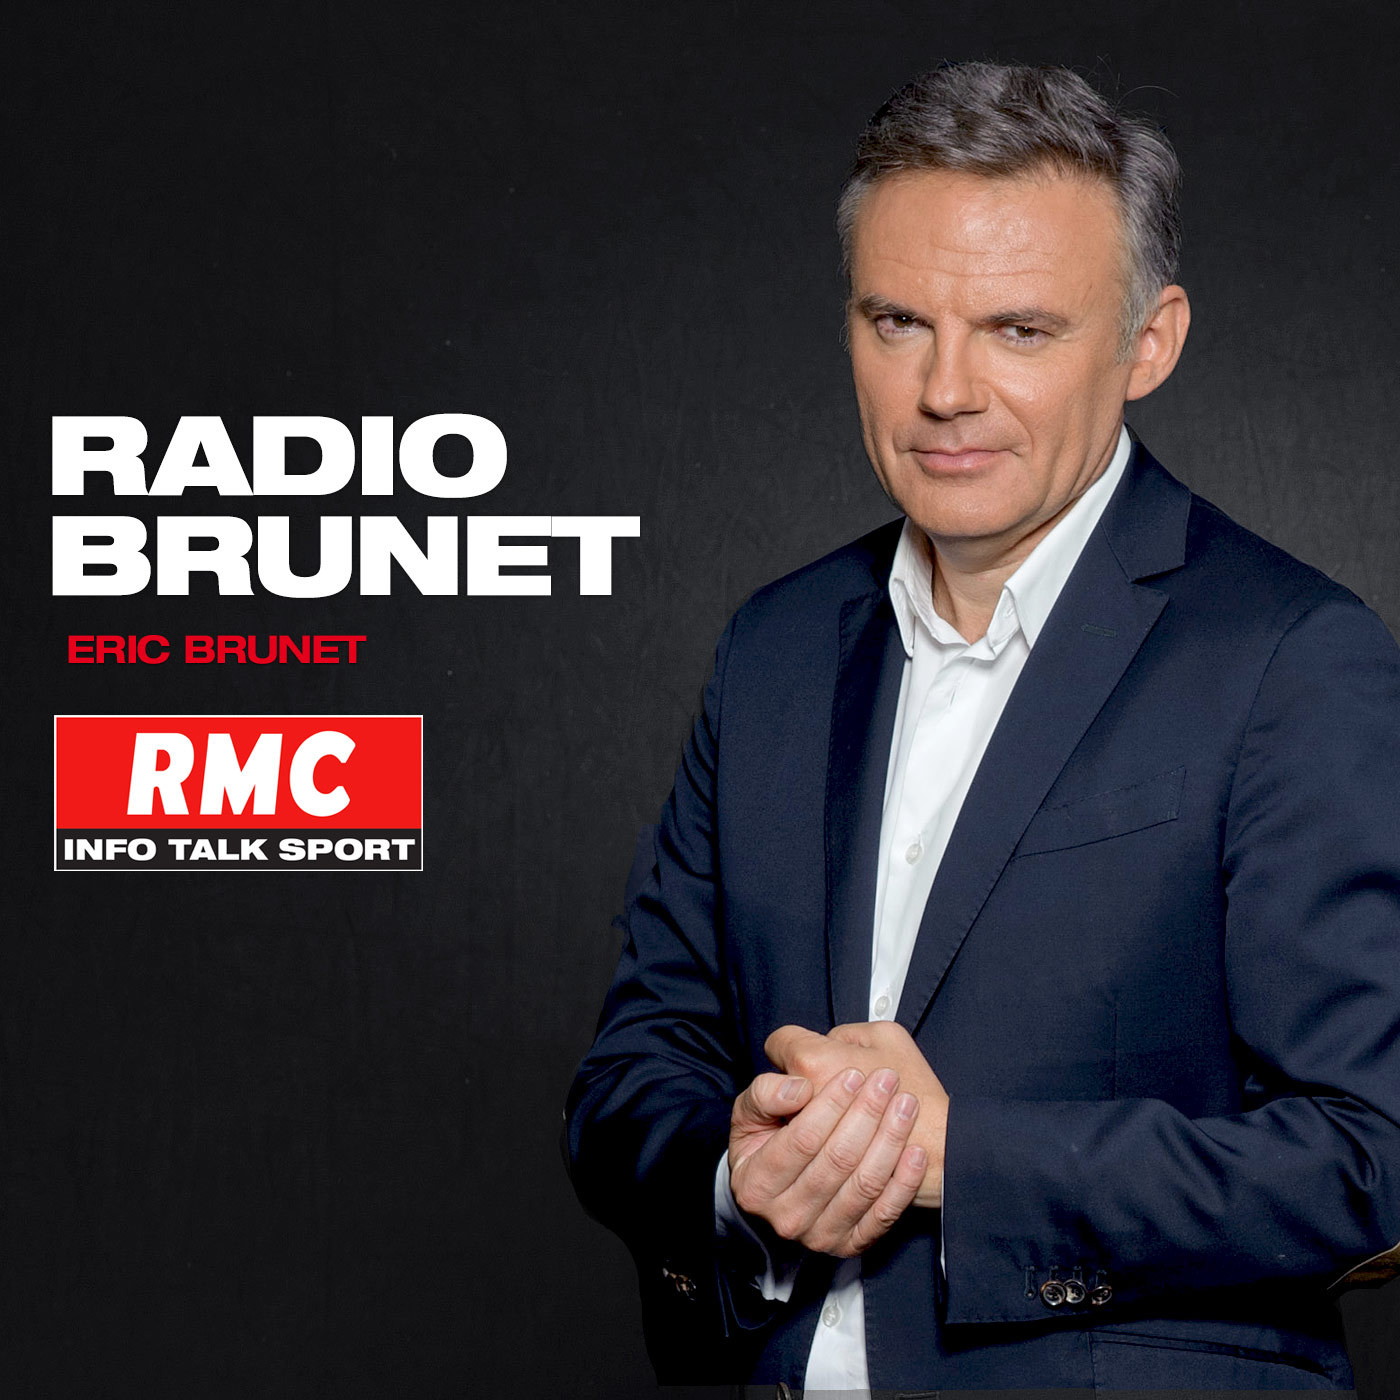 RMC-radio-brunet